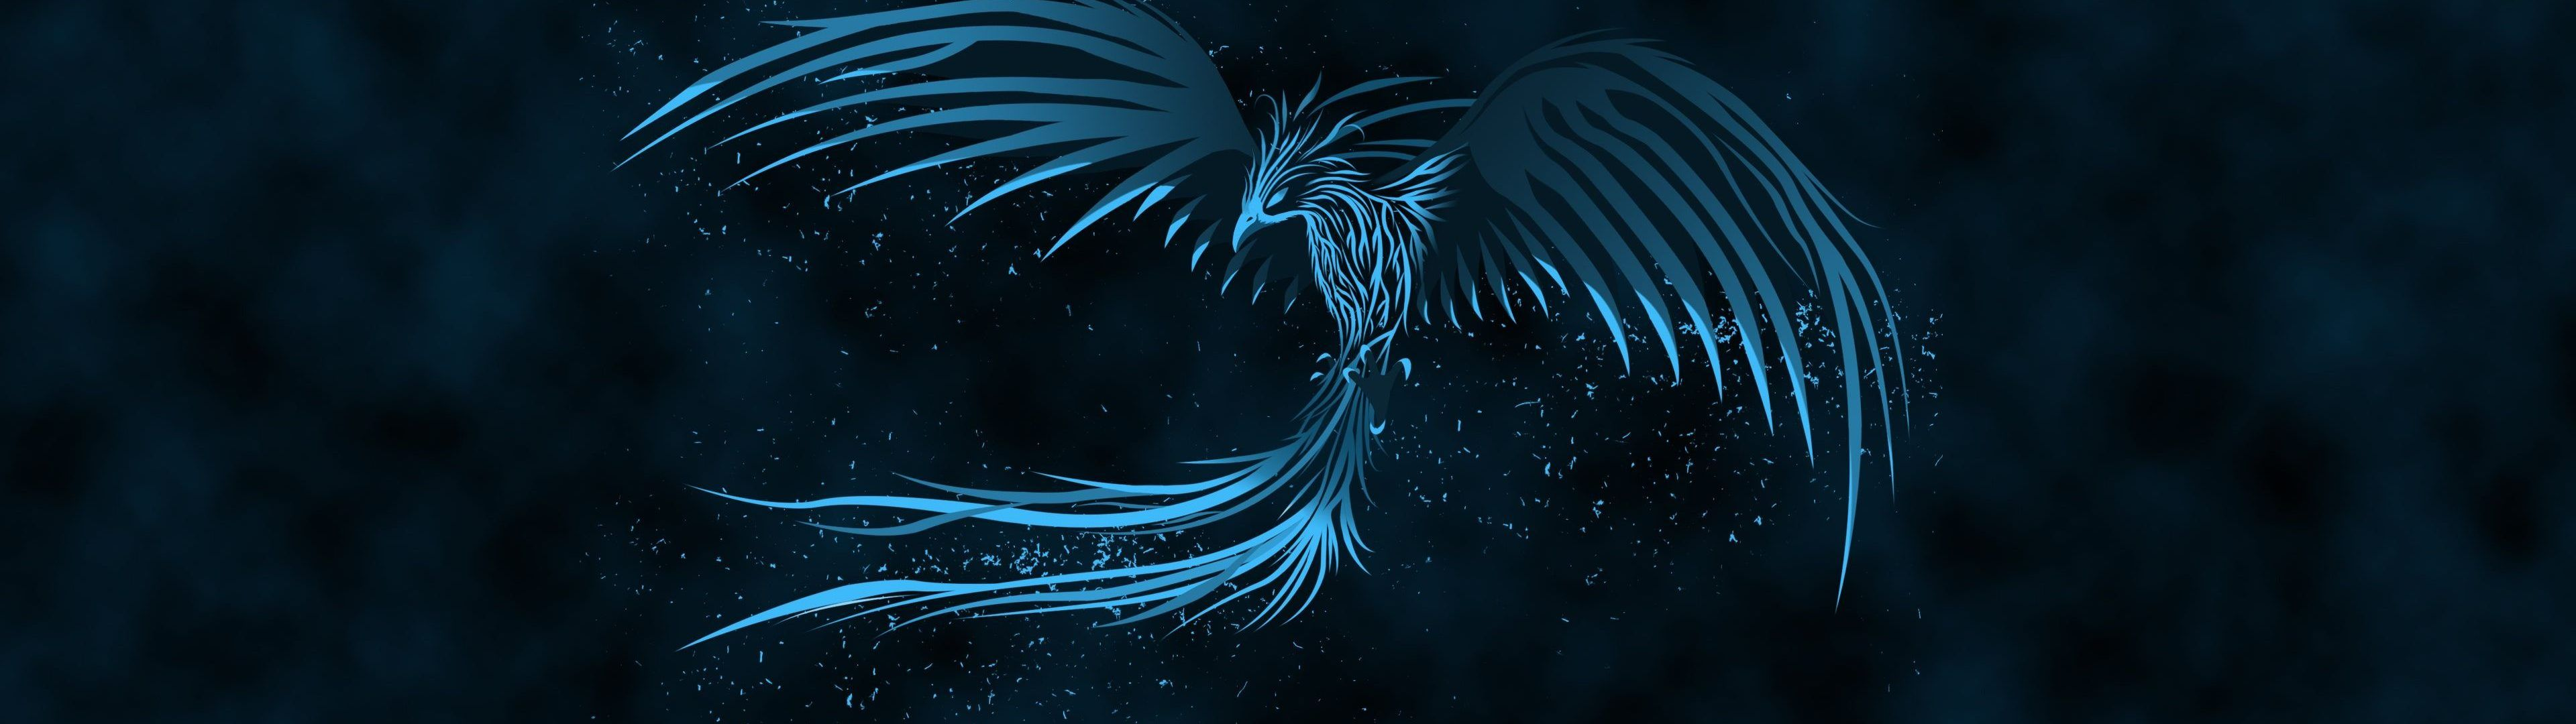 Blue Phoenix Dual Monitor Wallpaper 3840x1080 Widescreen